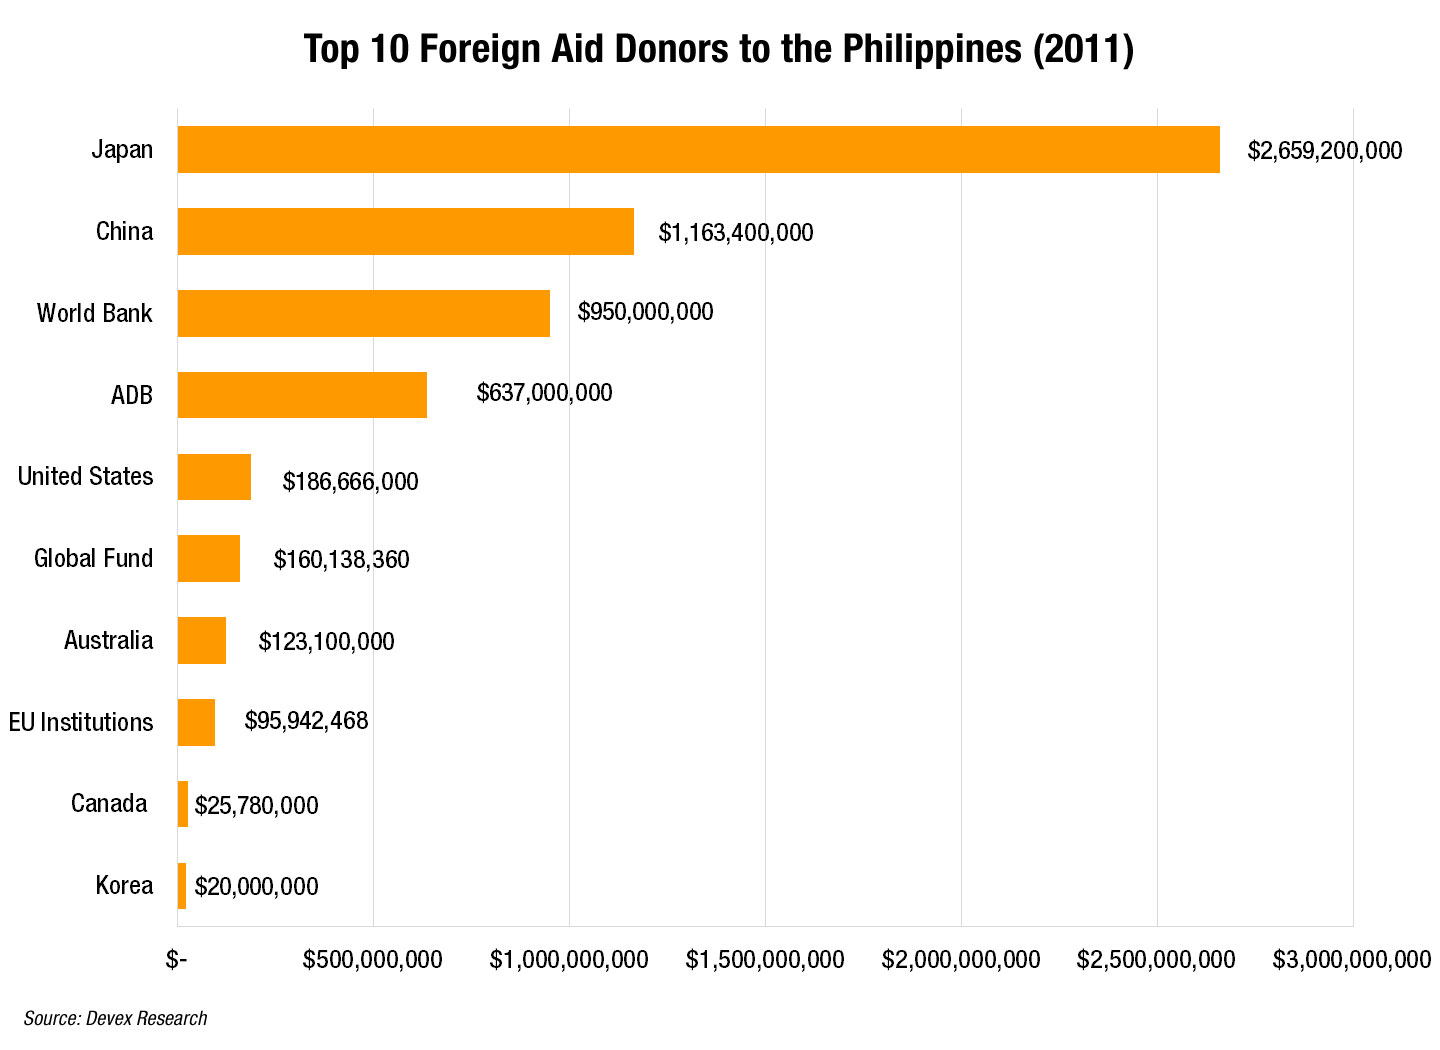 top foreign aid donors to the devex click here to view the image in large size